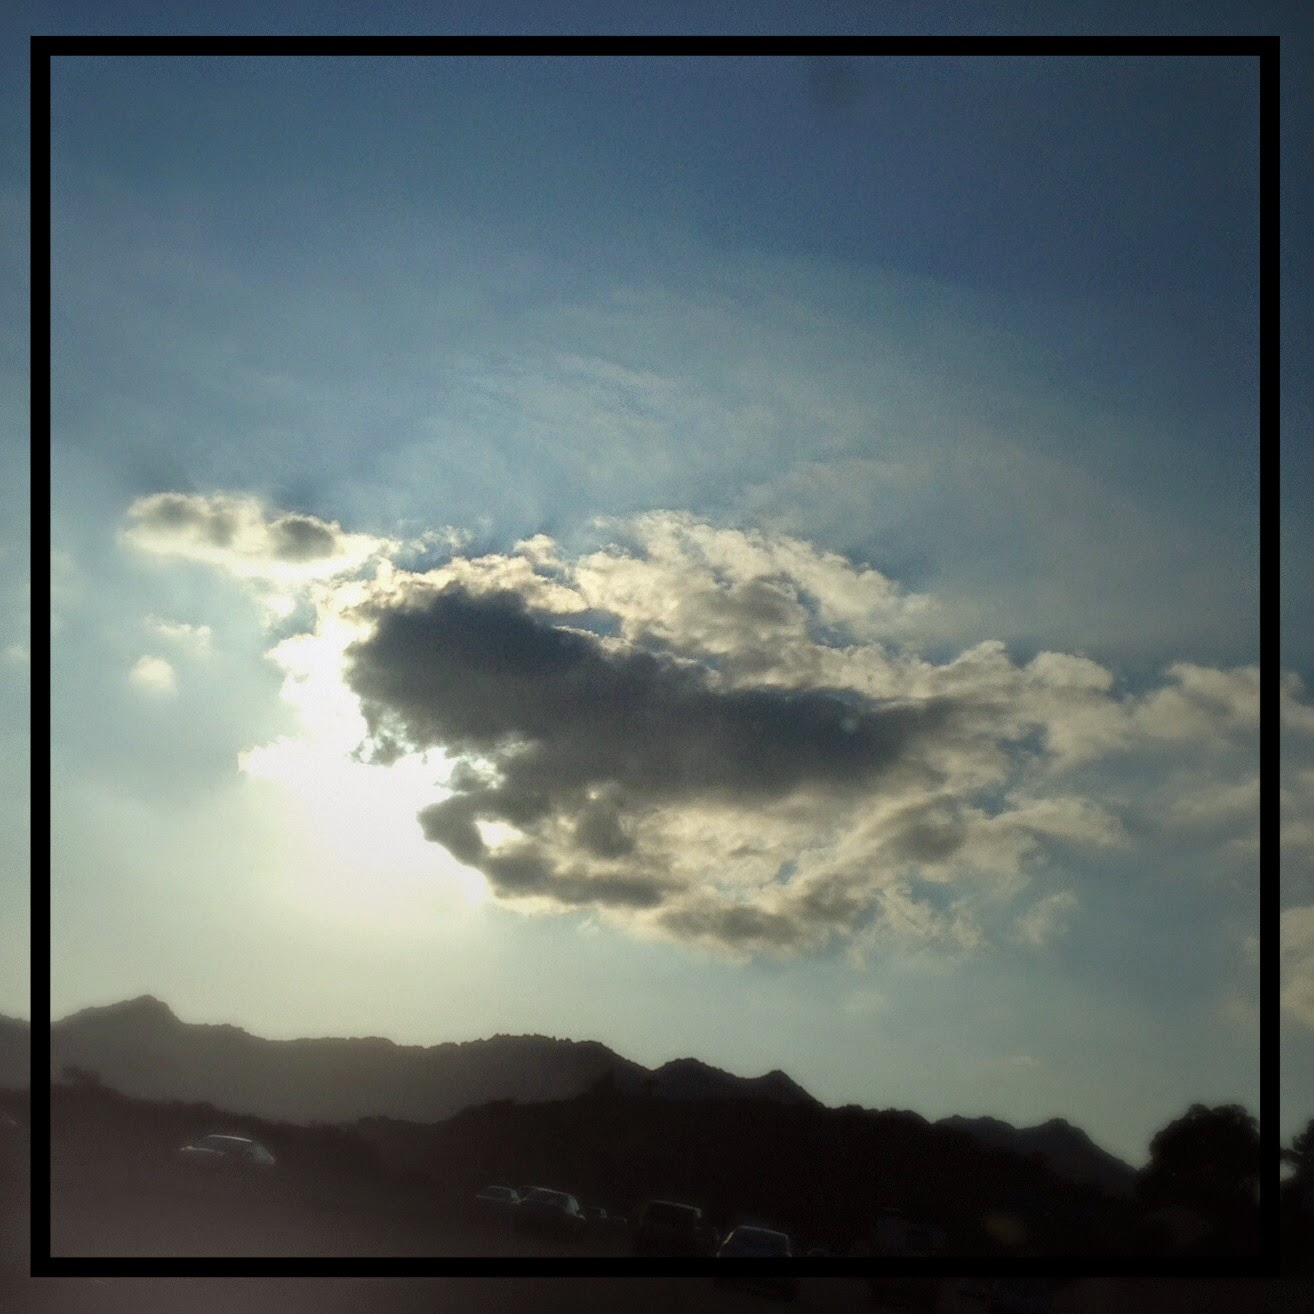 """A horse with its head in the clouds"" on The 3 Rs Blog"